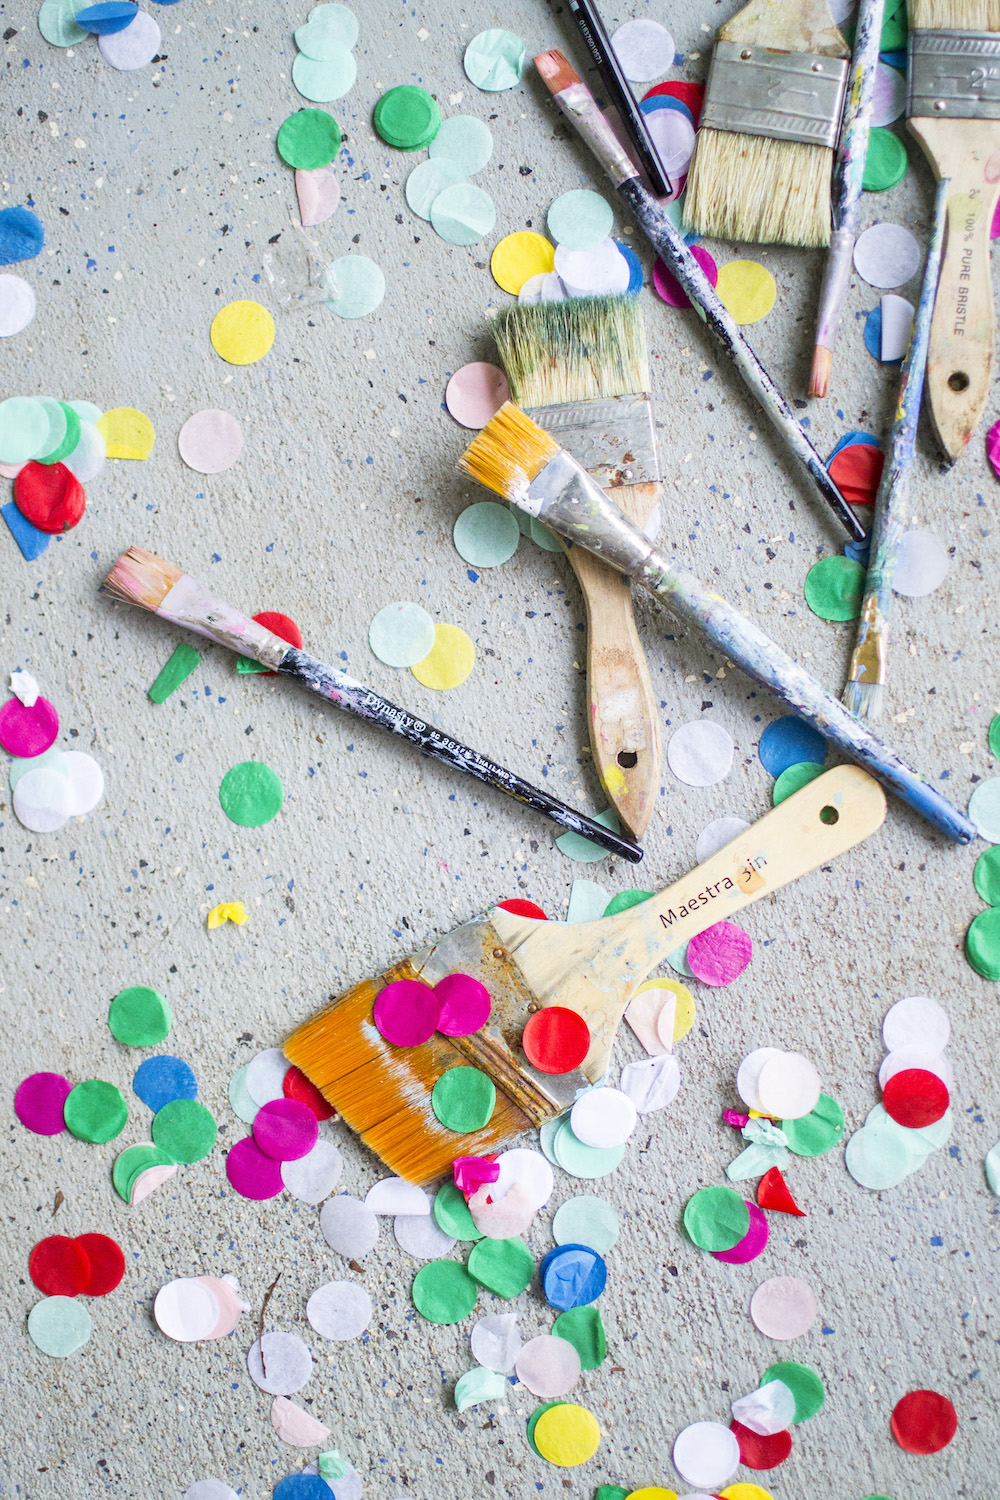 paintbrushes and confetti.jpg